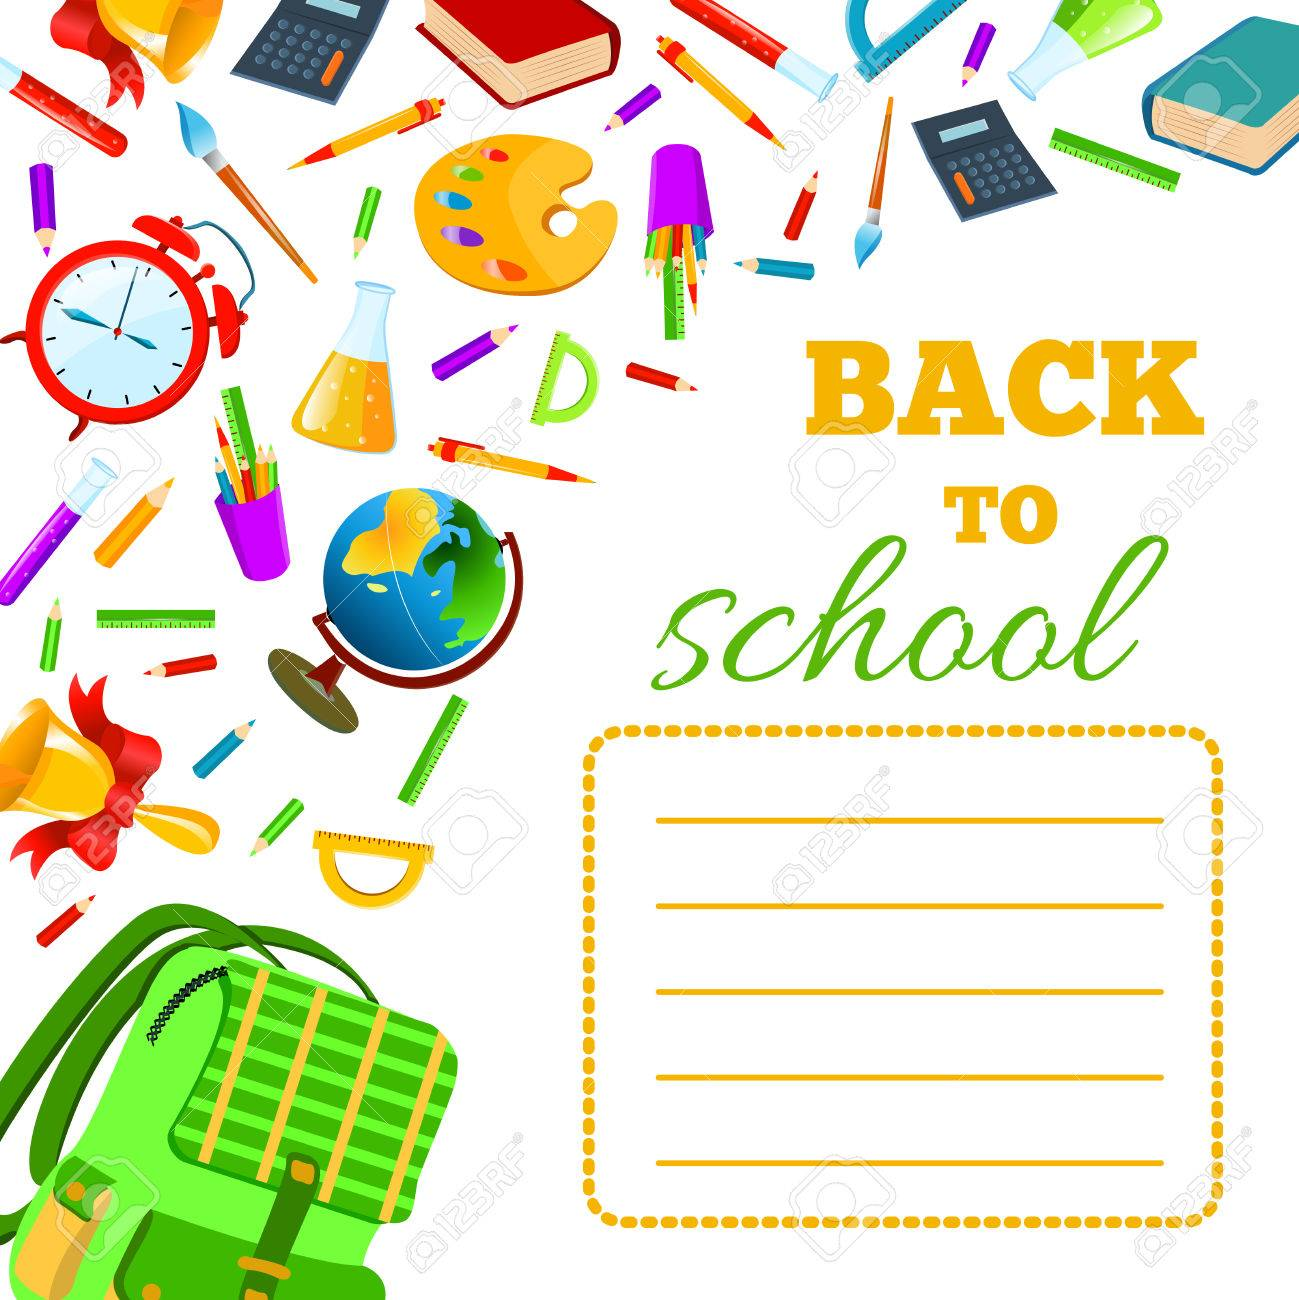 back to school cover for children teenagers school exercise book